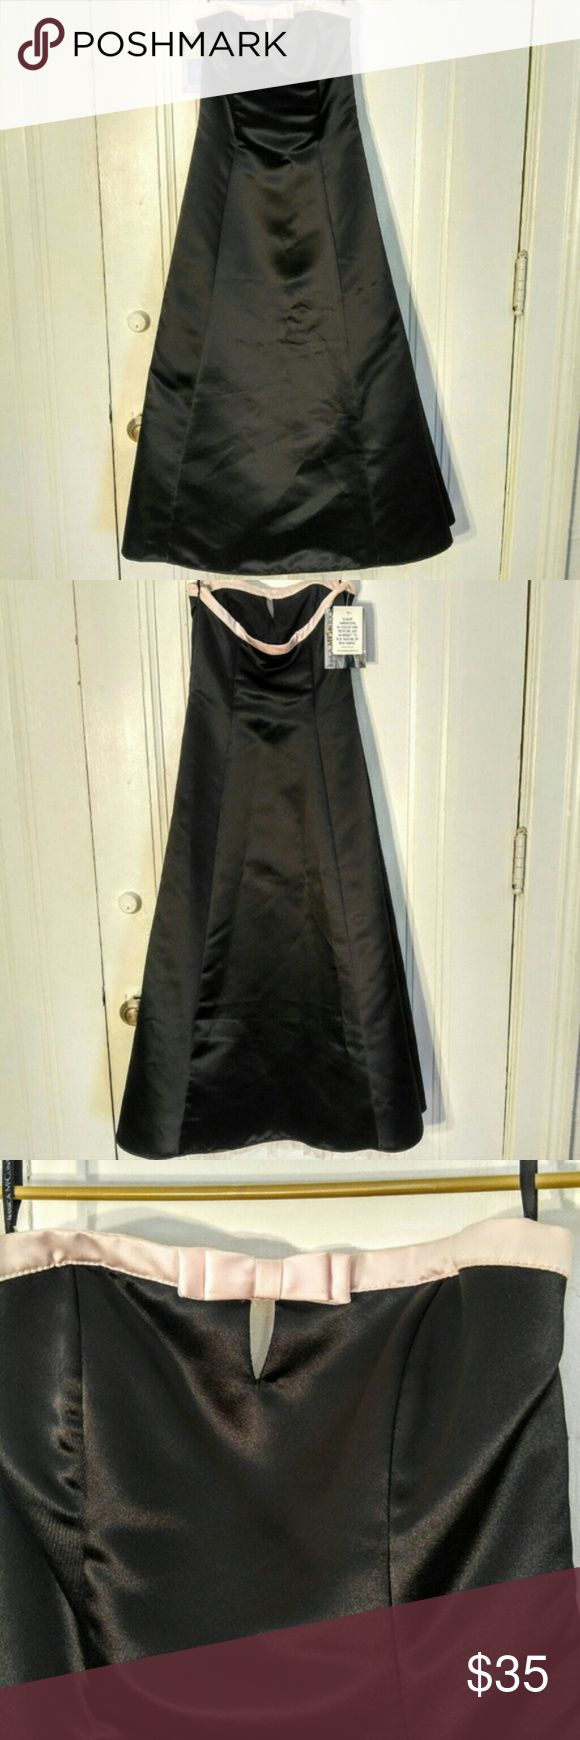 "Jessica McClintock Vintage Strapless Black Formal Jessica McClintock Vintage Strapless Black Formal Dress Size 1/2 or size 0. Brand new with tags. A little crinaline at the hem for volume in the skirt. Pink bow at the bust line. 14"" bust measurement layed flat. 40"" length. Great prom or homecoming dress. Jessica McClintock Dresses Prom"